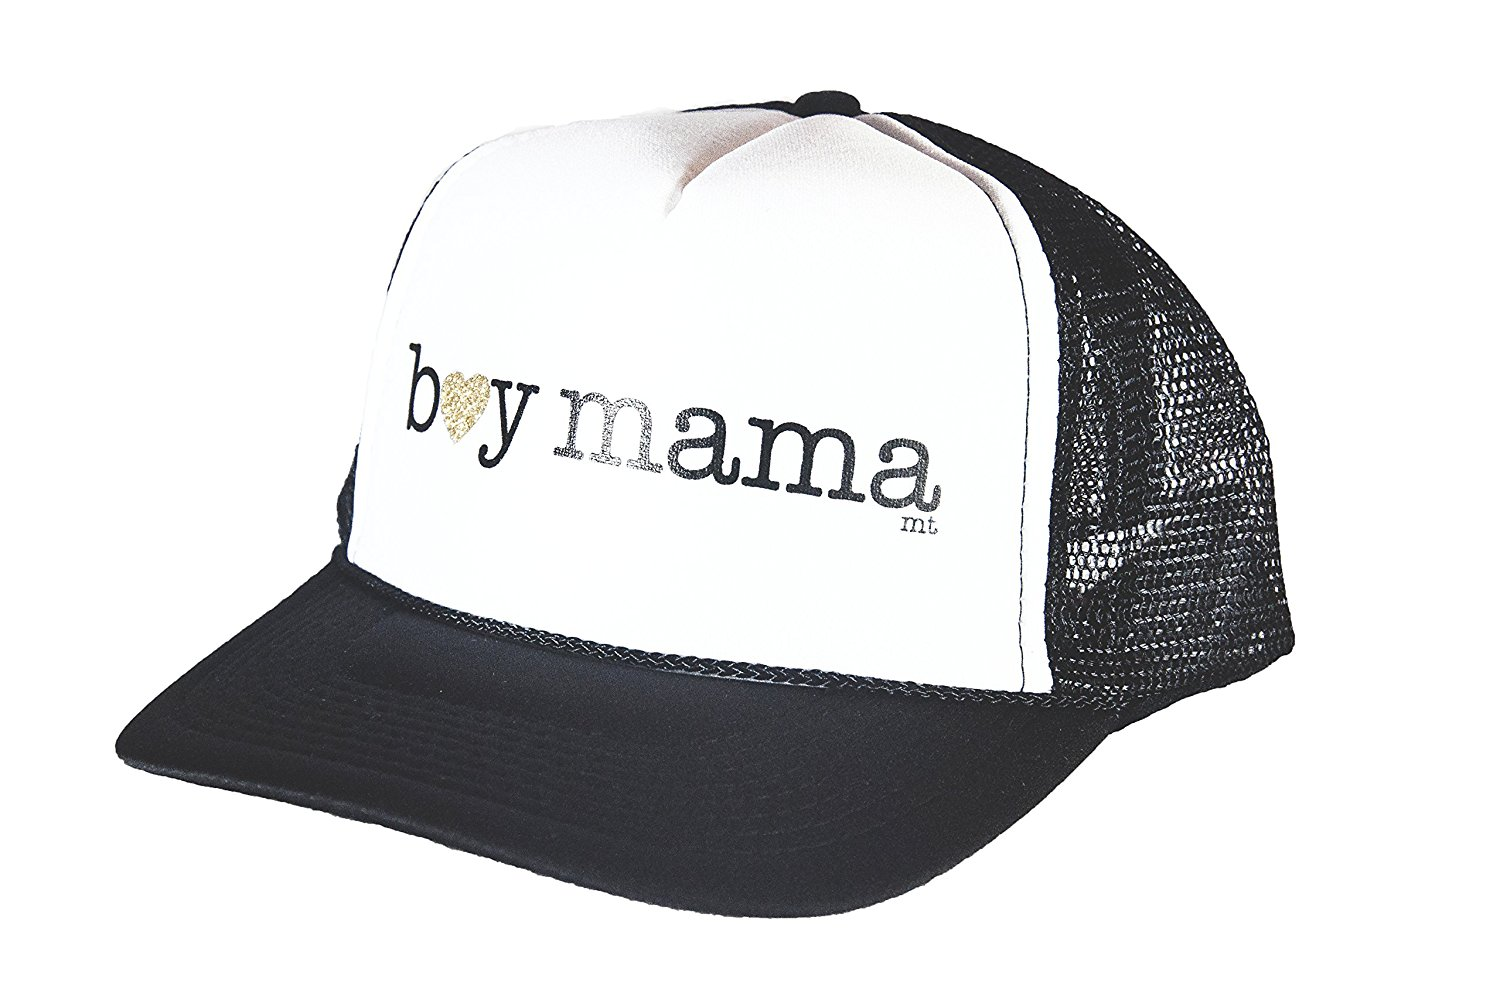 Mother Trucker & co. Boy Mama Women's Trucker Hat In Black/White